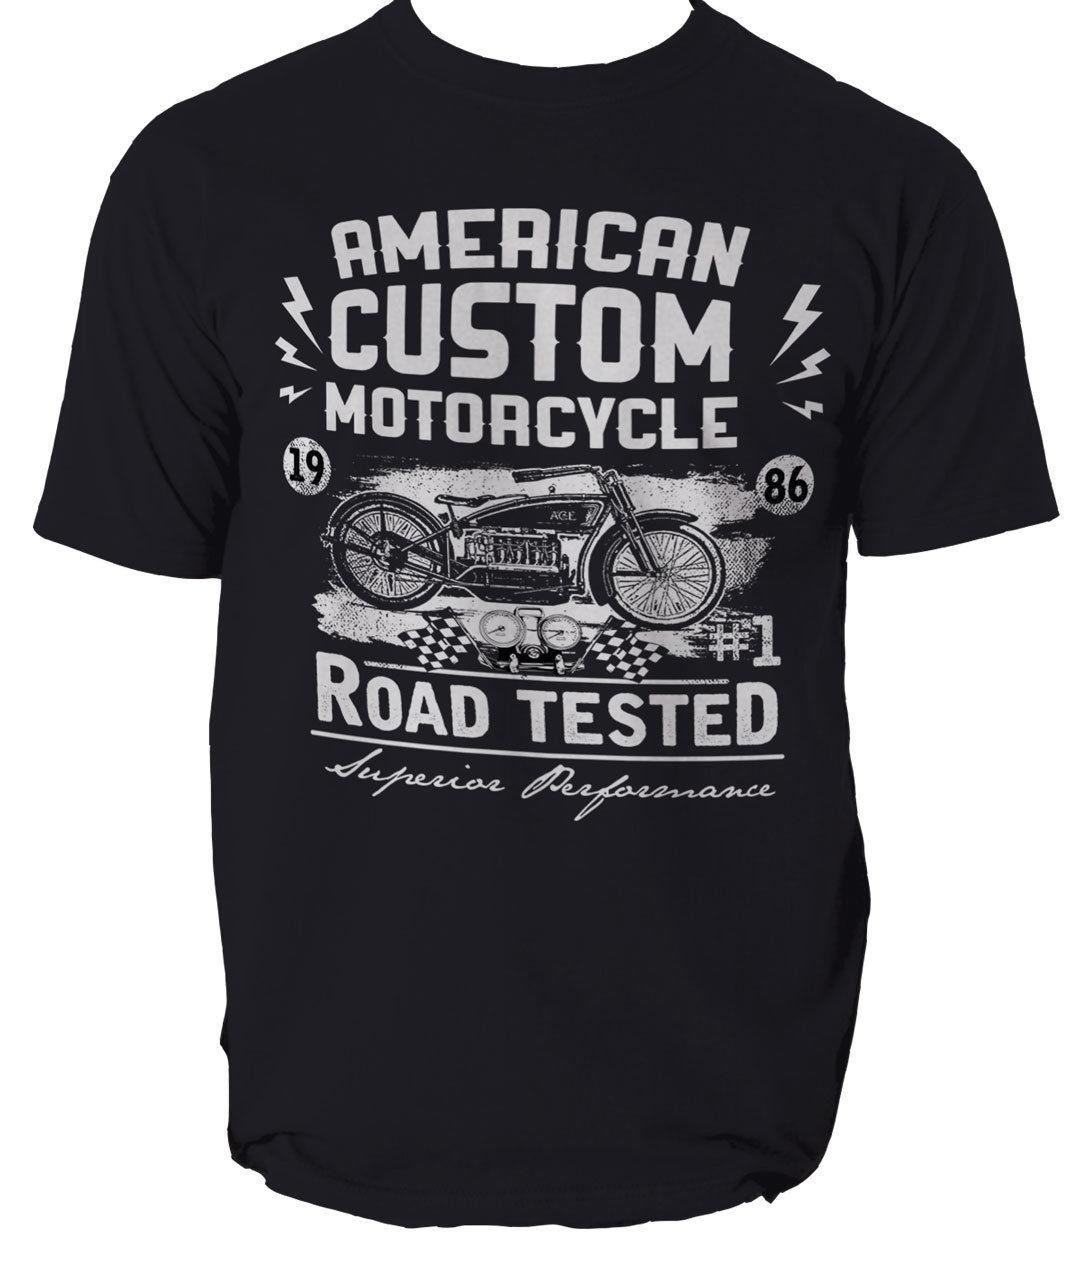 1b6ba7b23 AMERICAN CUSTOM MOTORCYCLE T Shirt BIKE BIKER RIDE Mens T Shirt Tee S 3XL  2018 Hot Tees Custom Printed Tshirt Cheap Tee Trendy Mens T Shirts T Shirt  Best ...